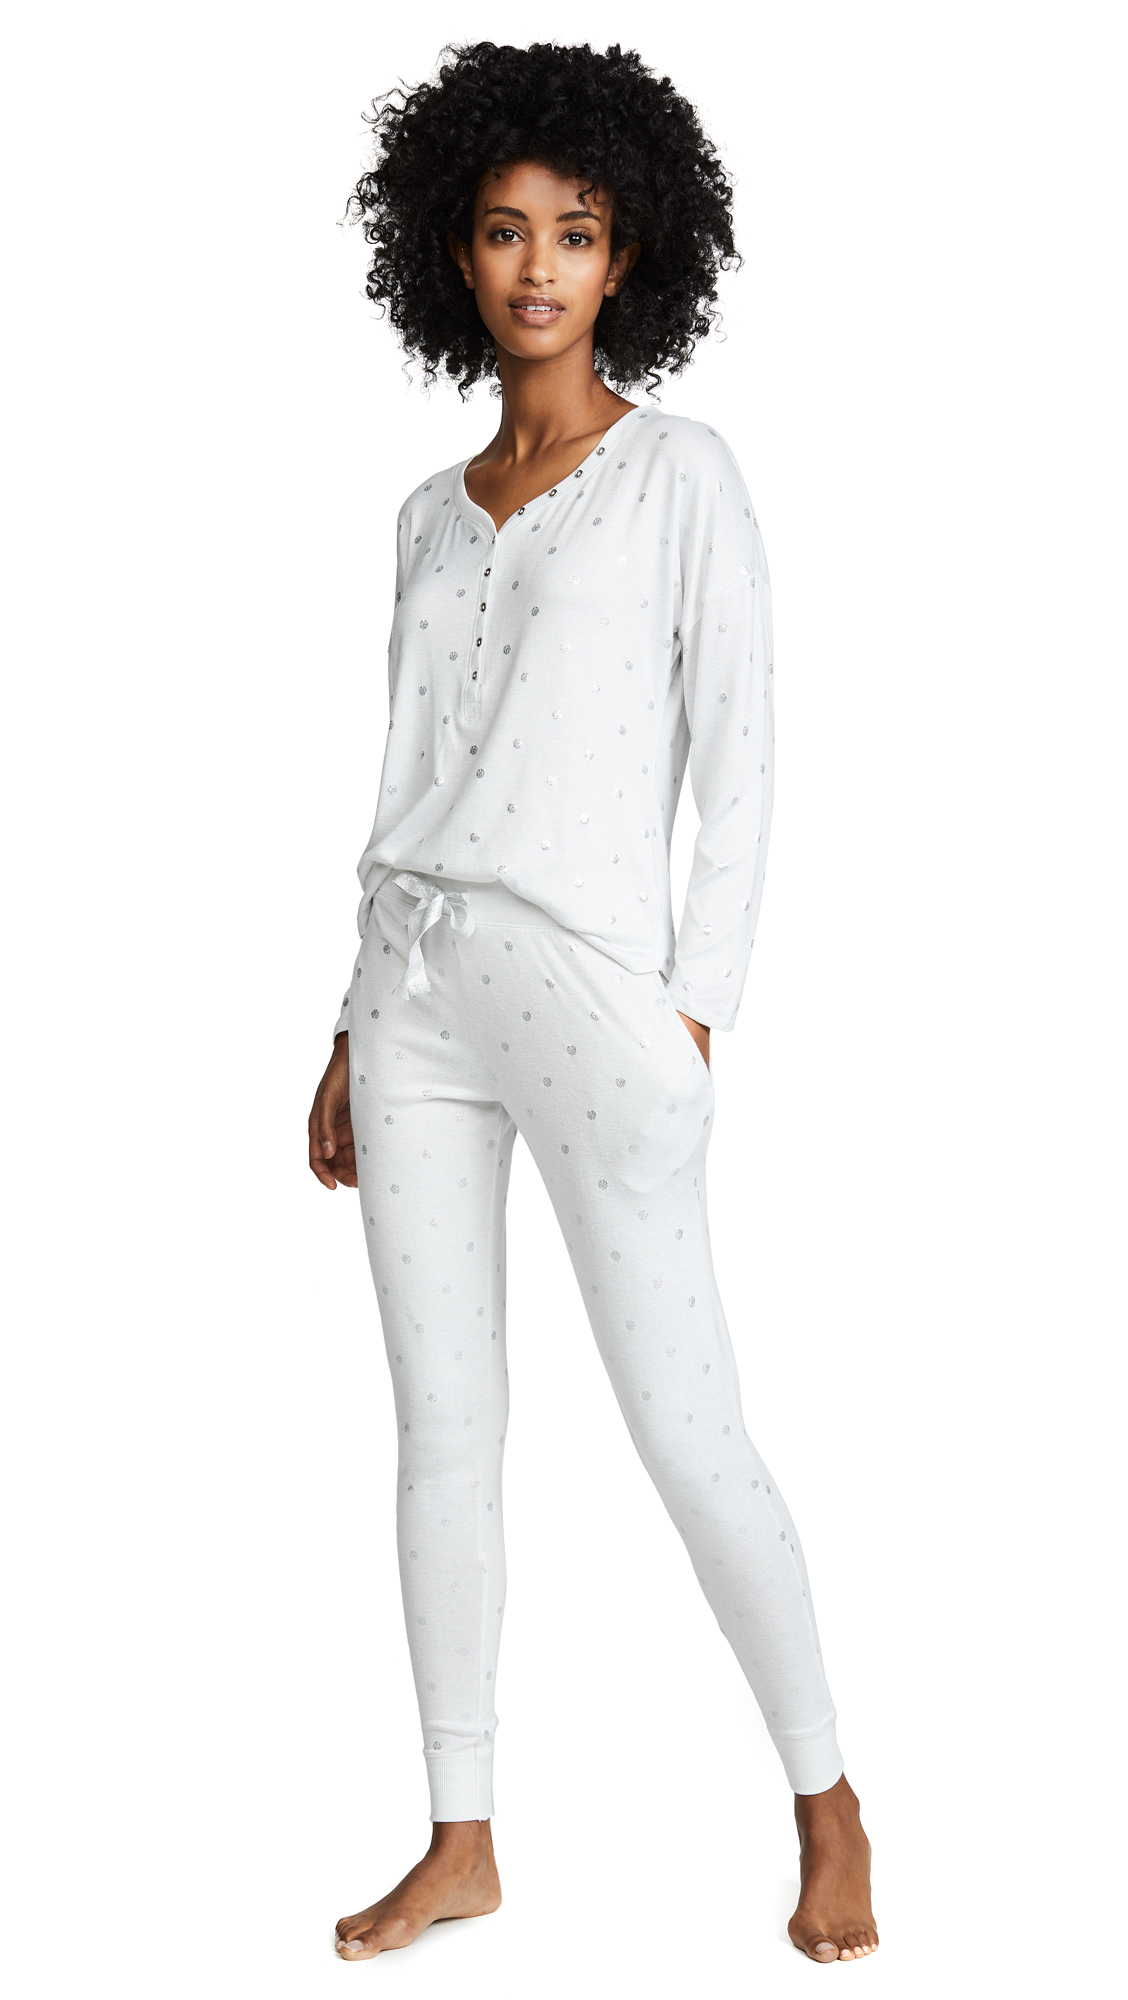 Emerson Road Polka Dot Foil PJ Set In White